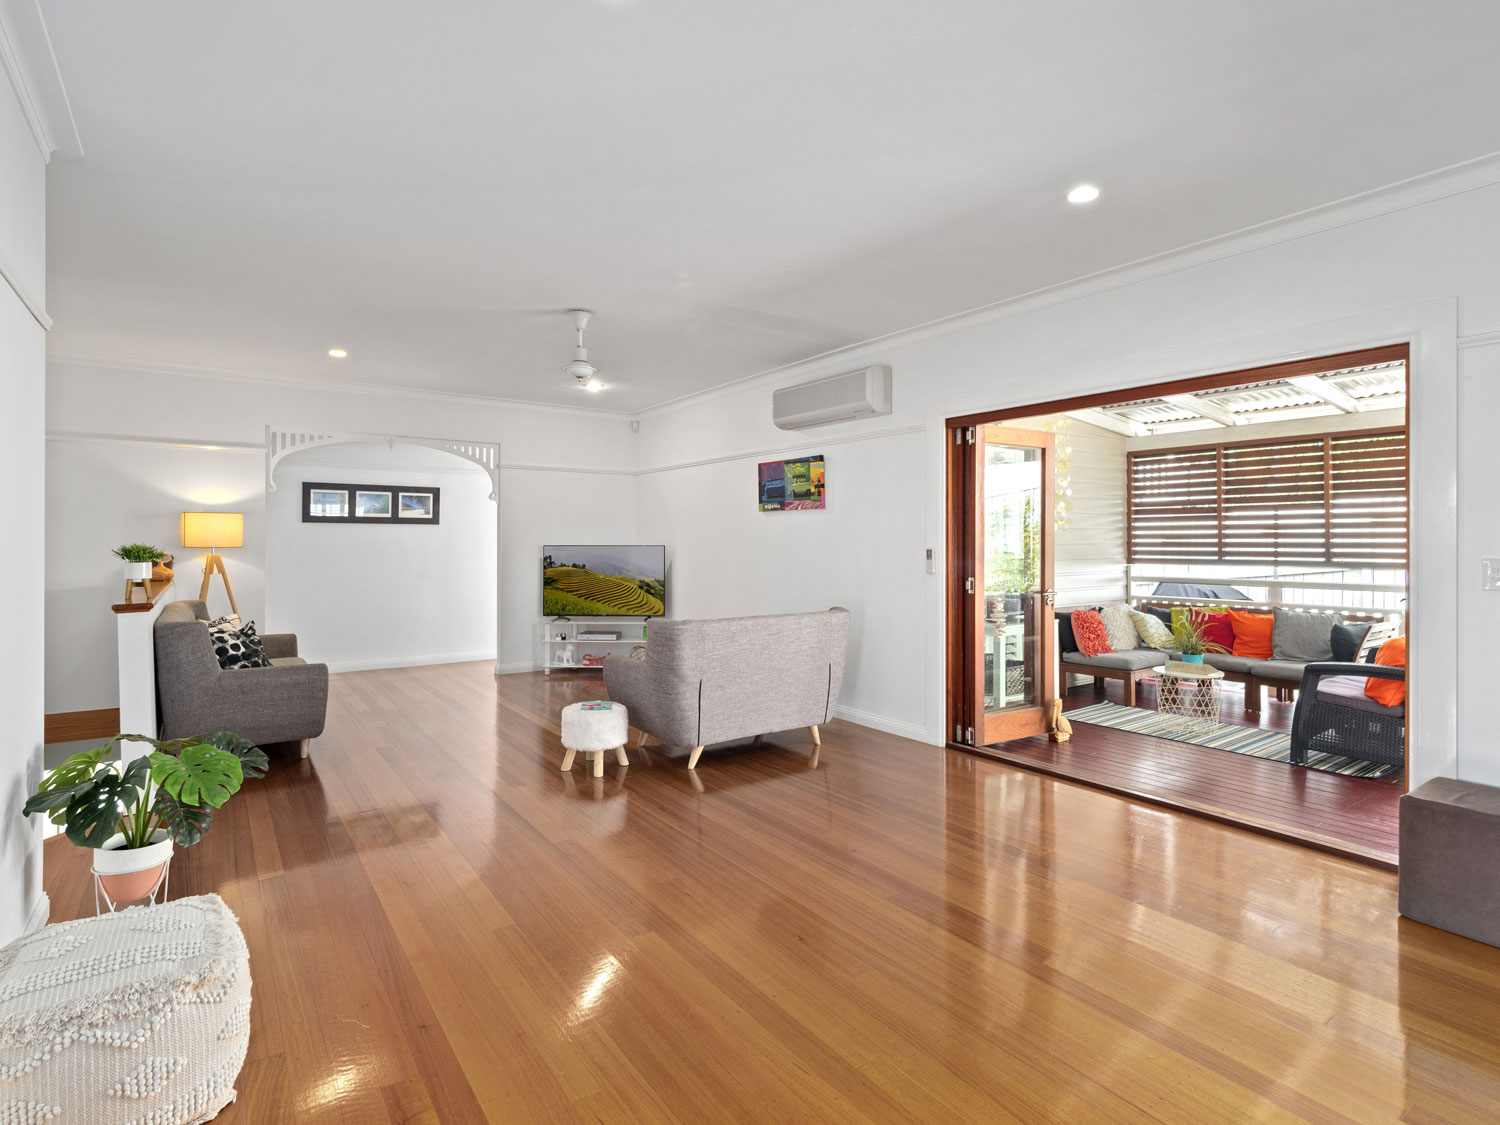 The main living area of a home for sale at Eaton's Hill